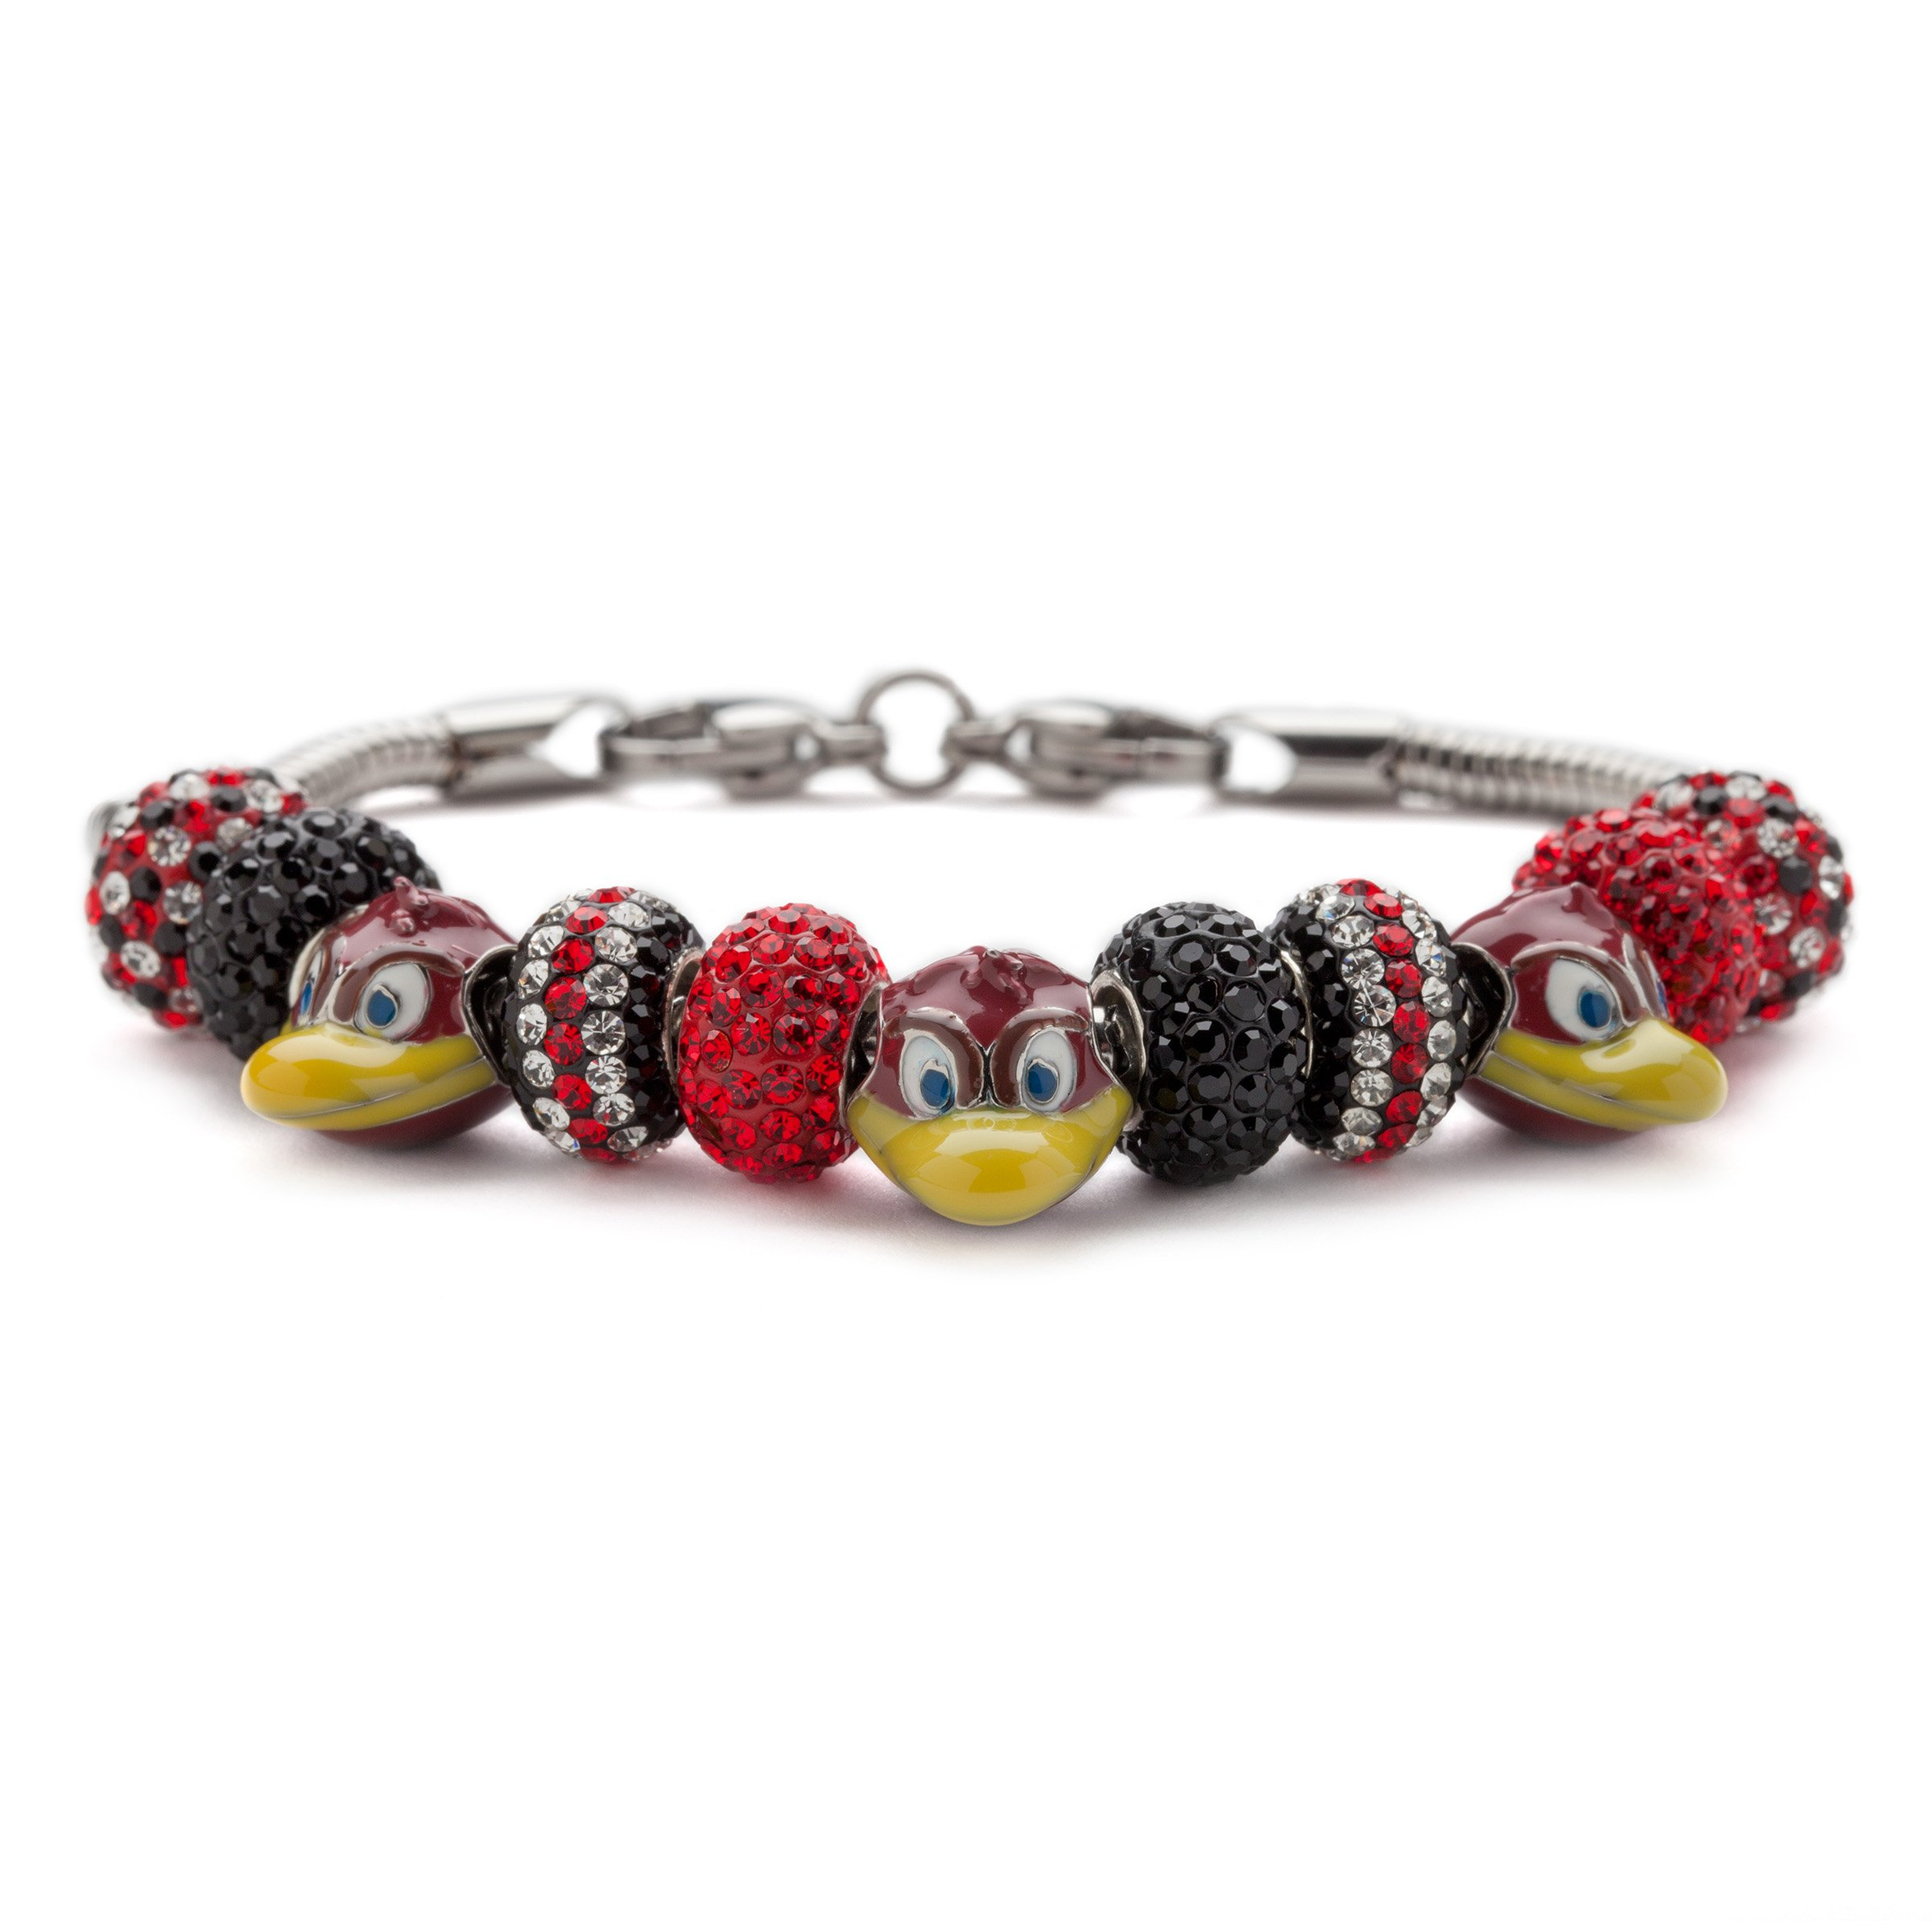 University of South Carolina Bracelet | USC Gamecocks - Charm Bracelet with 3 Cocky Beads and 8 Crystal Charms | Officially Licensed University of South Carolina Jewelry | Stainless Steel by Stone Armory